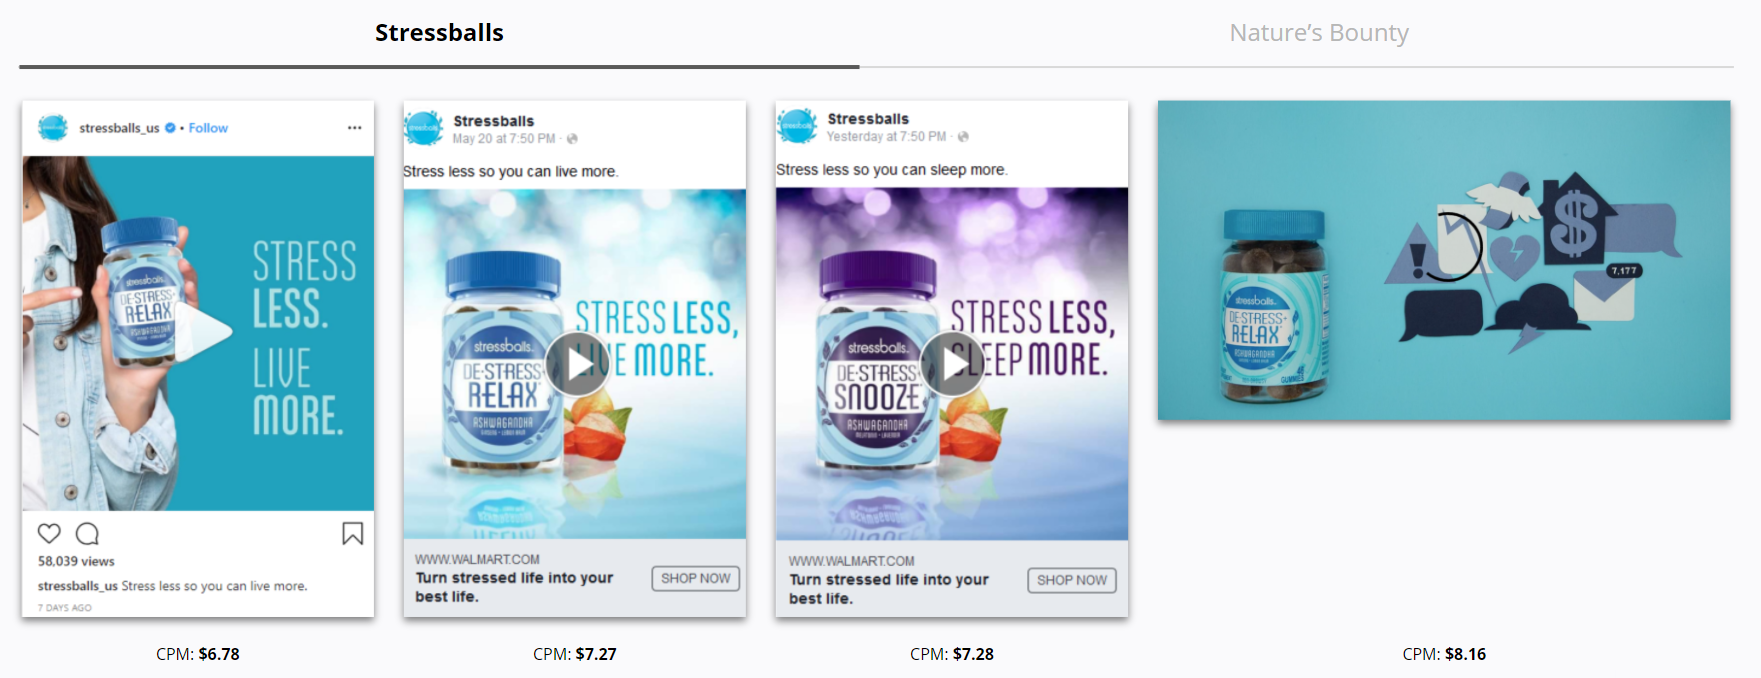 StressBalls - Anxiety - Stress Less - Turn the stressed life into your best life